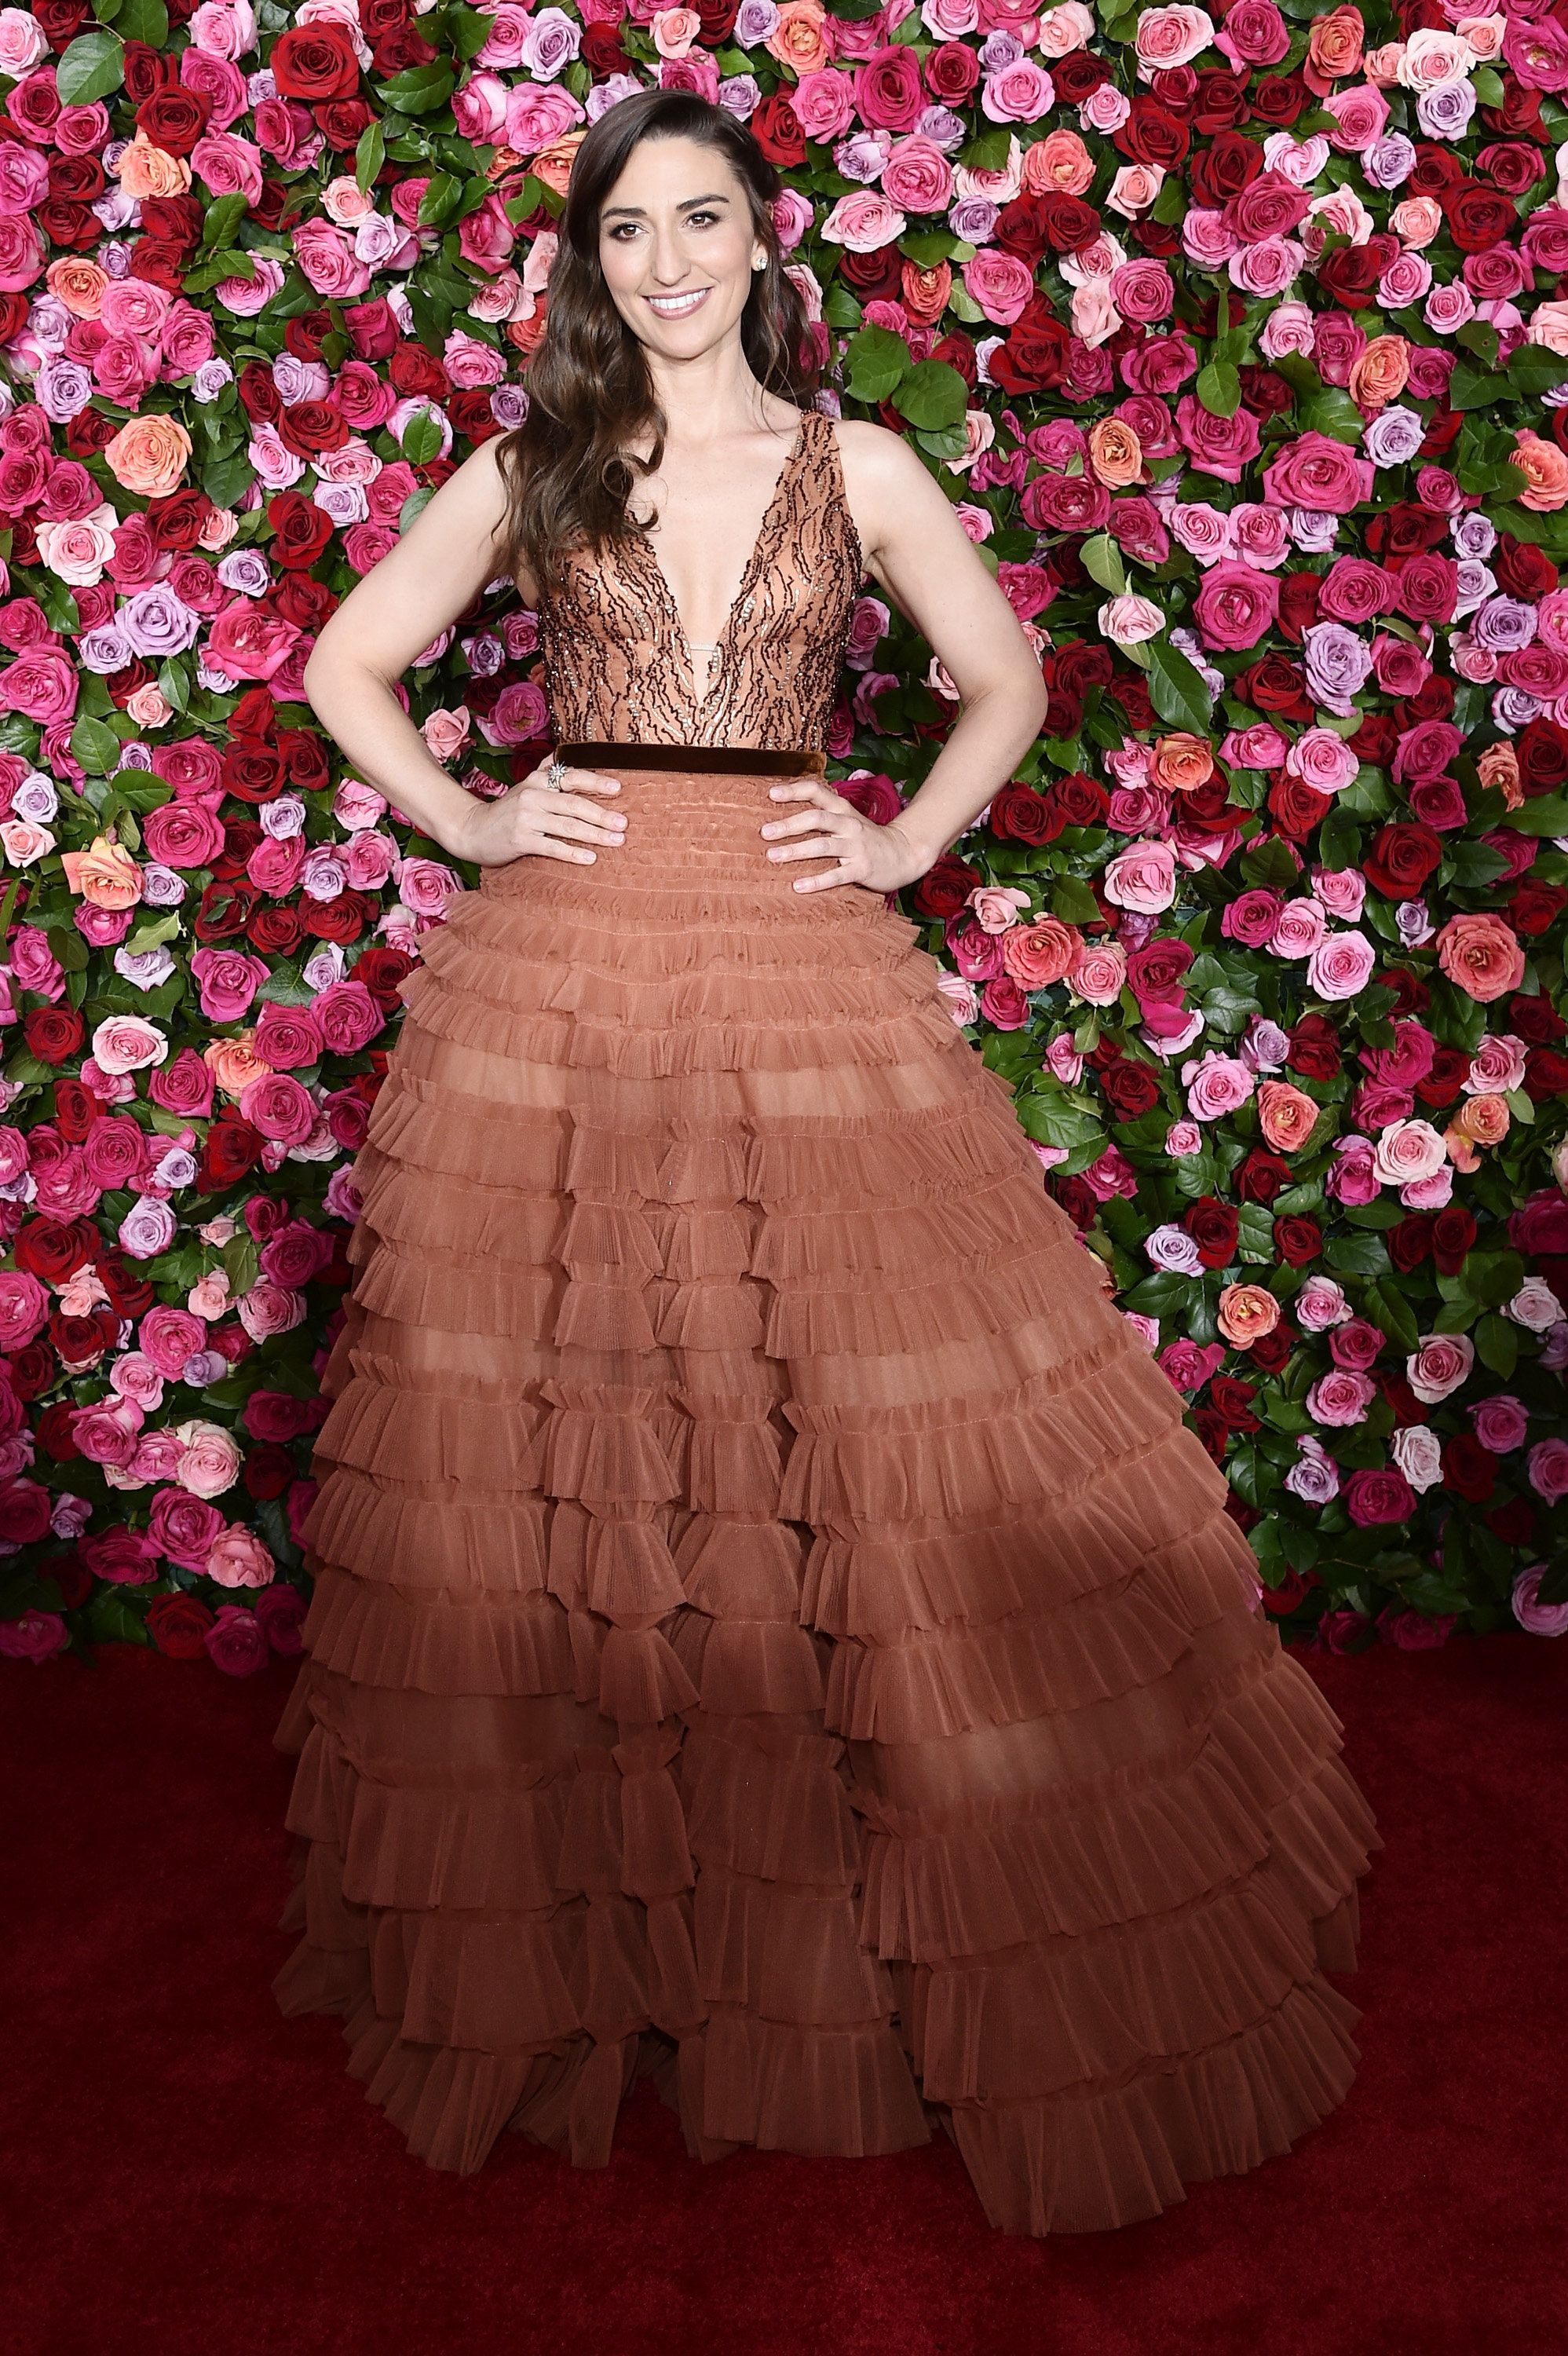 NEW YORK, NY - JUNE 10:  Sara Bareilles attends the 72nd Annual Tony Awards on June 10, 2018 in New York City.  (Photo by Steven Ferdman/Patrick McMullan via Getty Images)